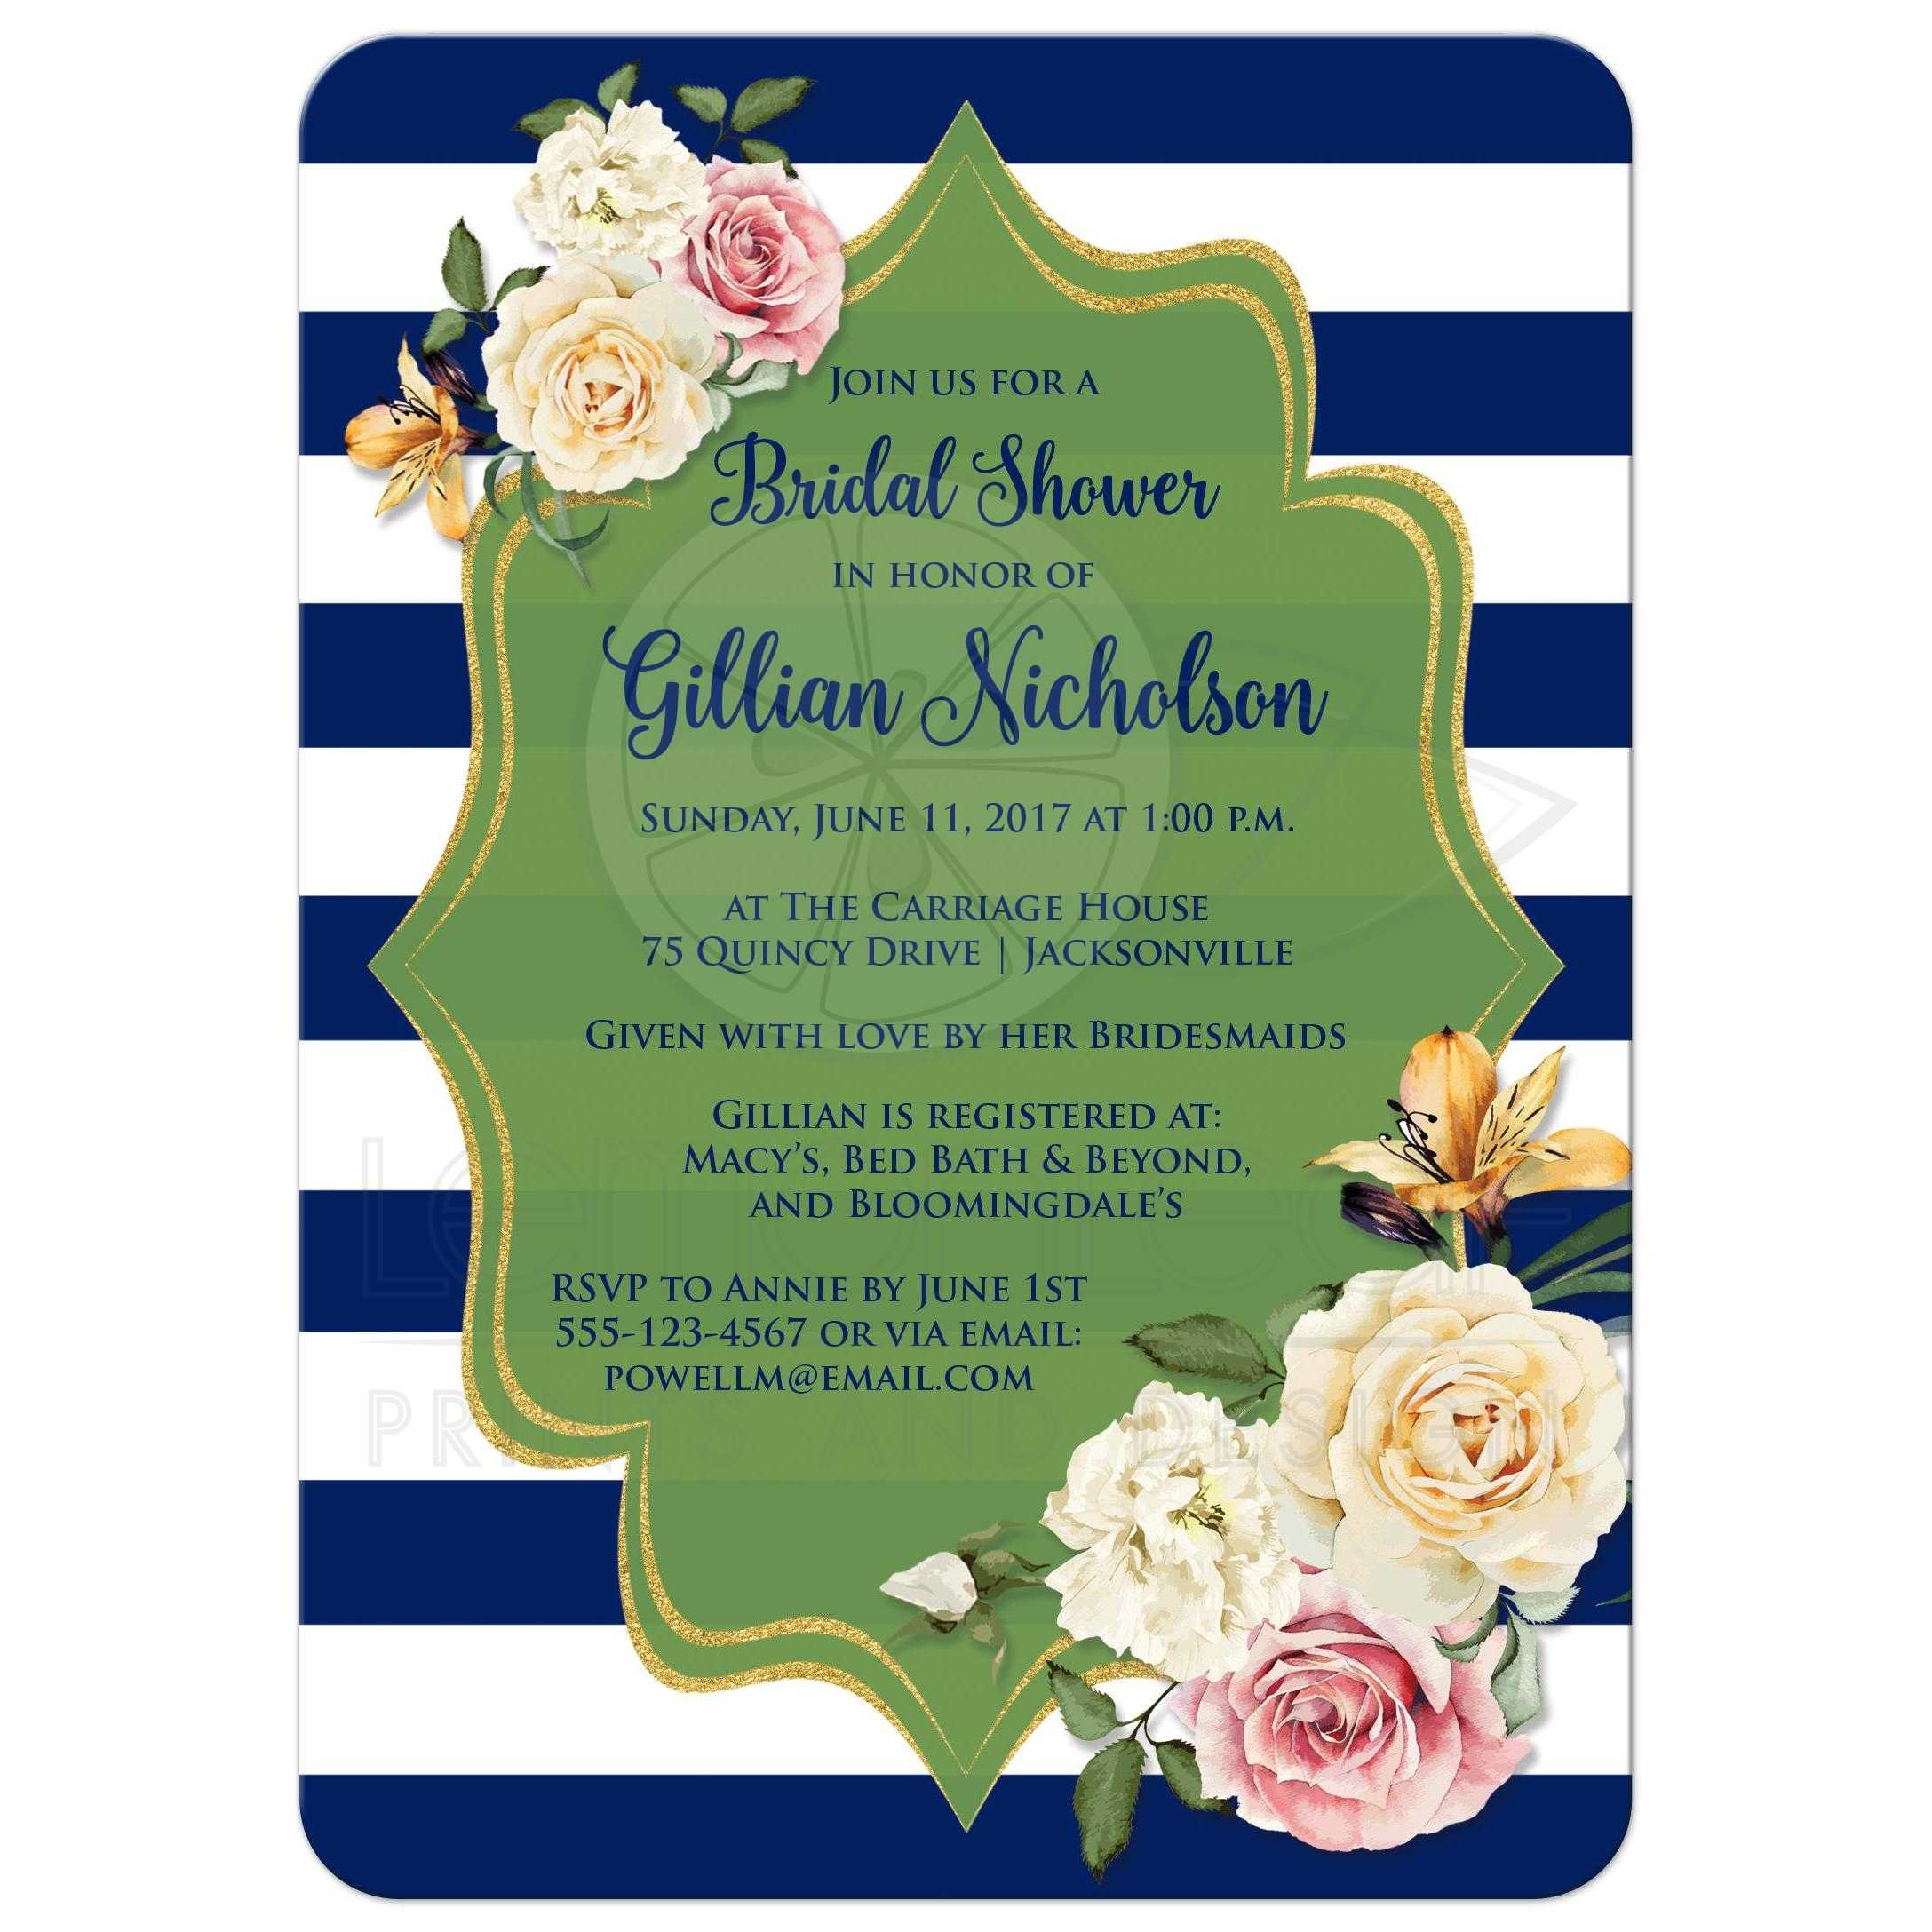 Bridal Shower Invitation | Navy, Green, White Stripes | Vintage ...